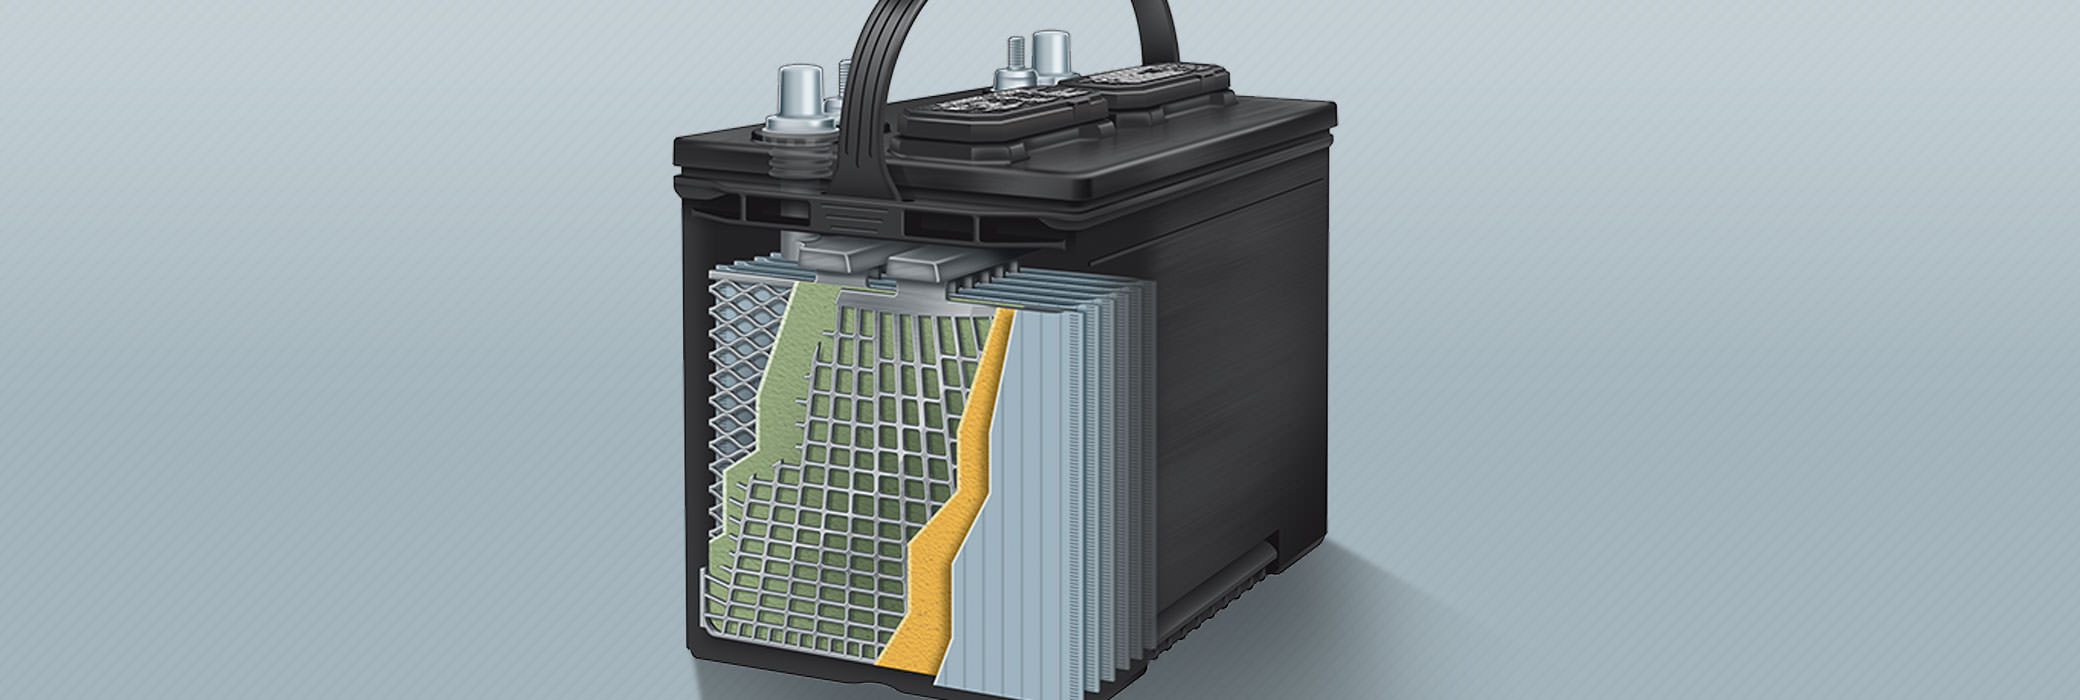 The conventional flooded lead-acid battery is designed to deliver quick bursts of power